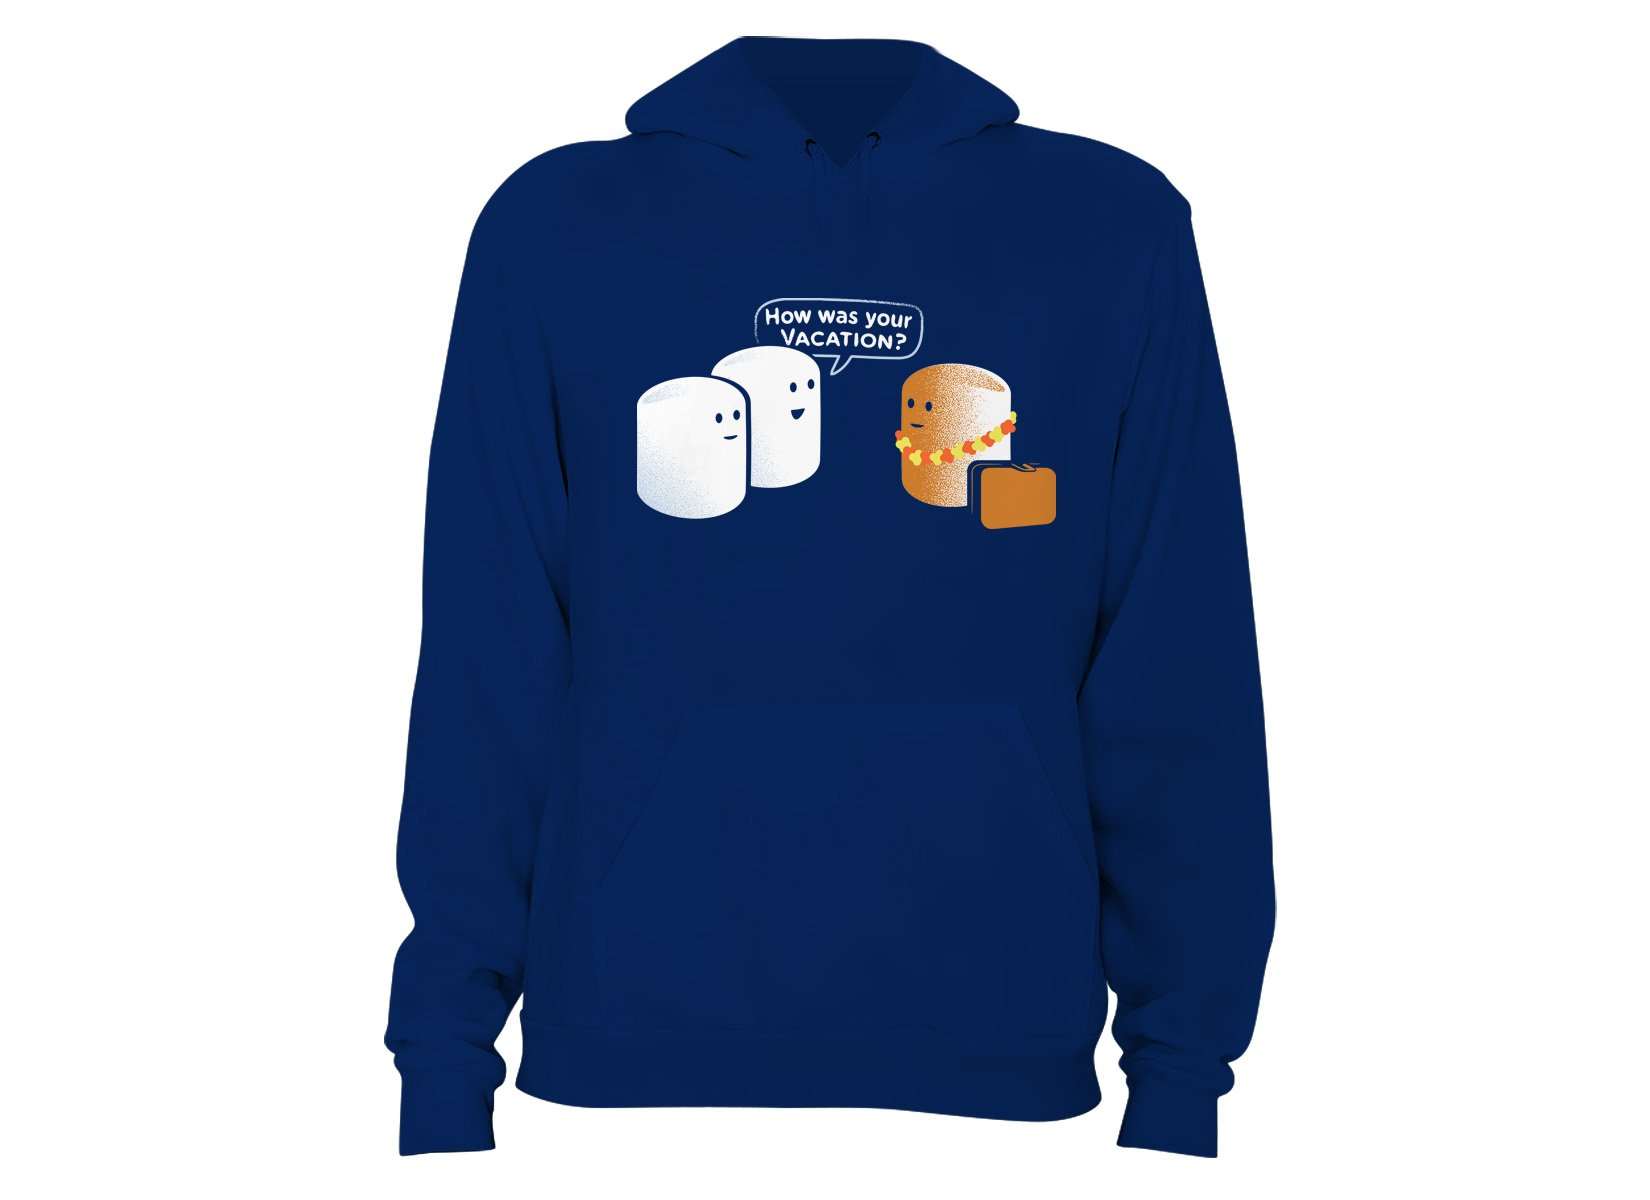 Marshmallow Vacation on Hoodie